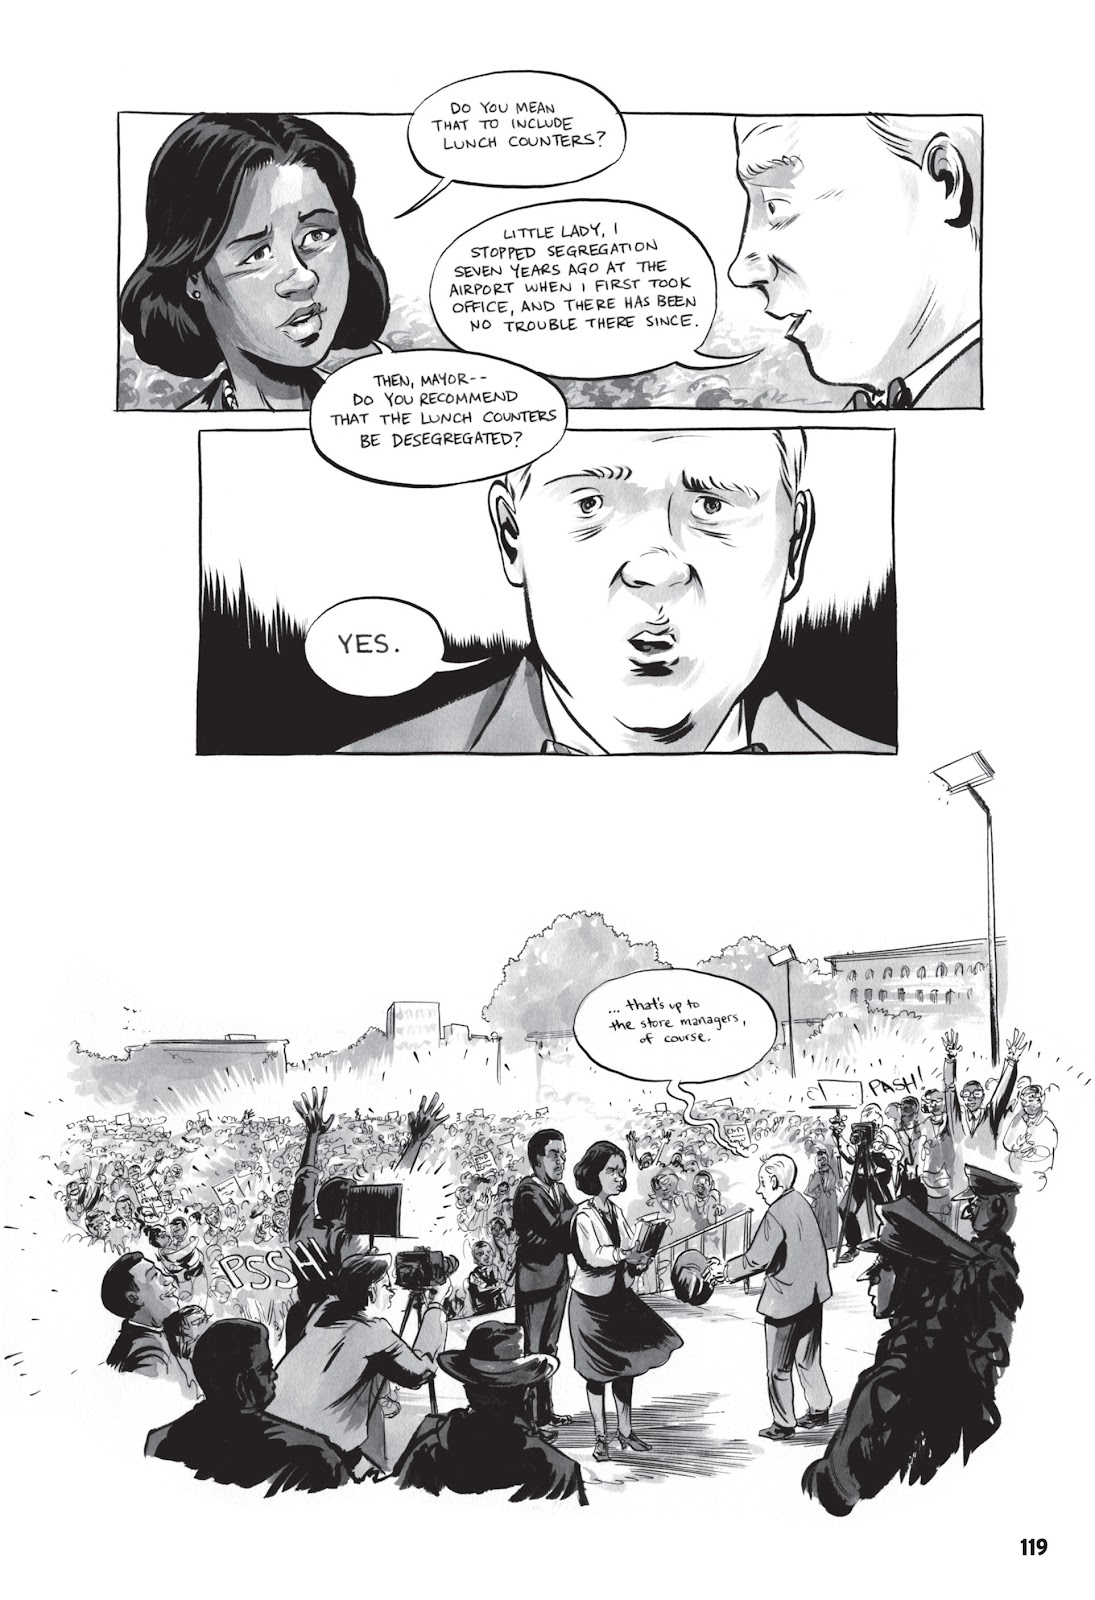 March 1 Page 116